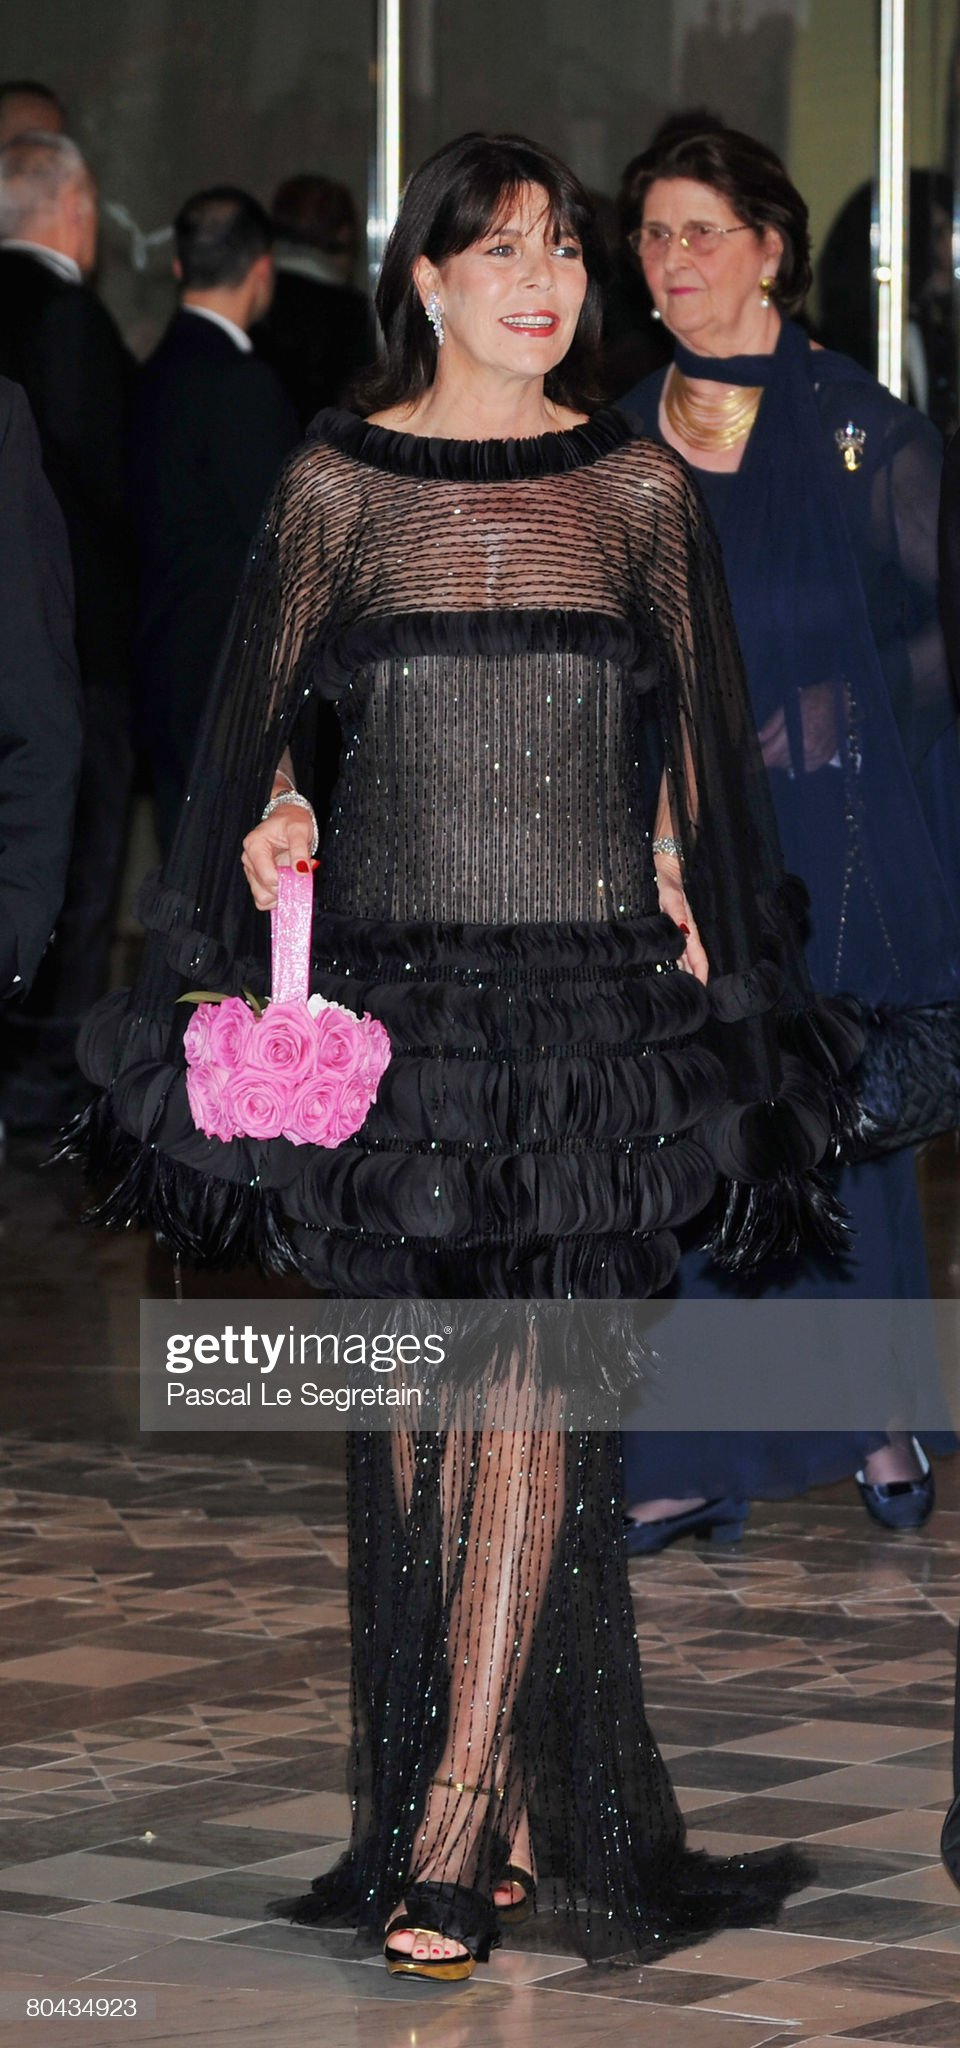 2008 Monte Carlo Rose Ball 'Movida' : News Photo